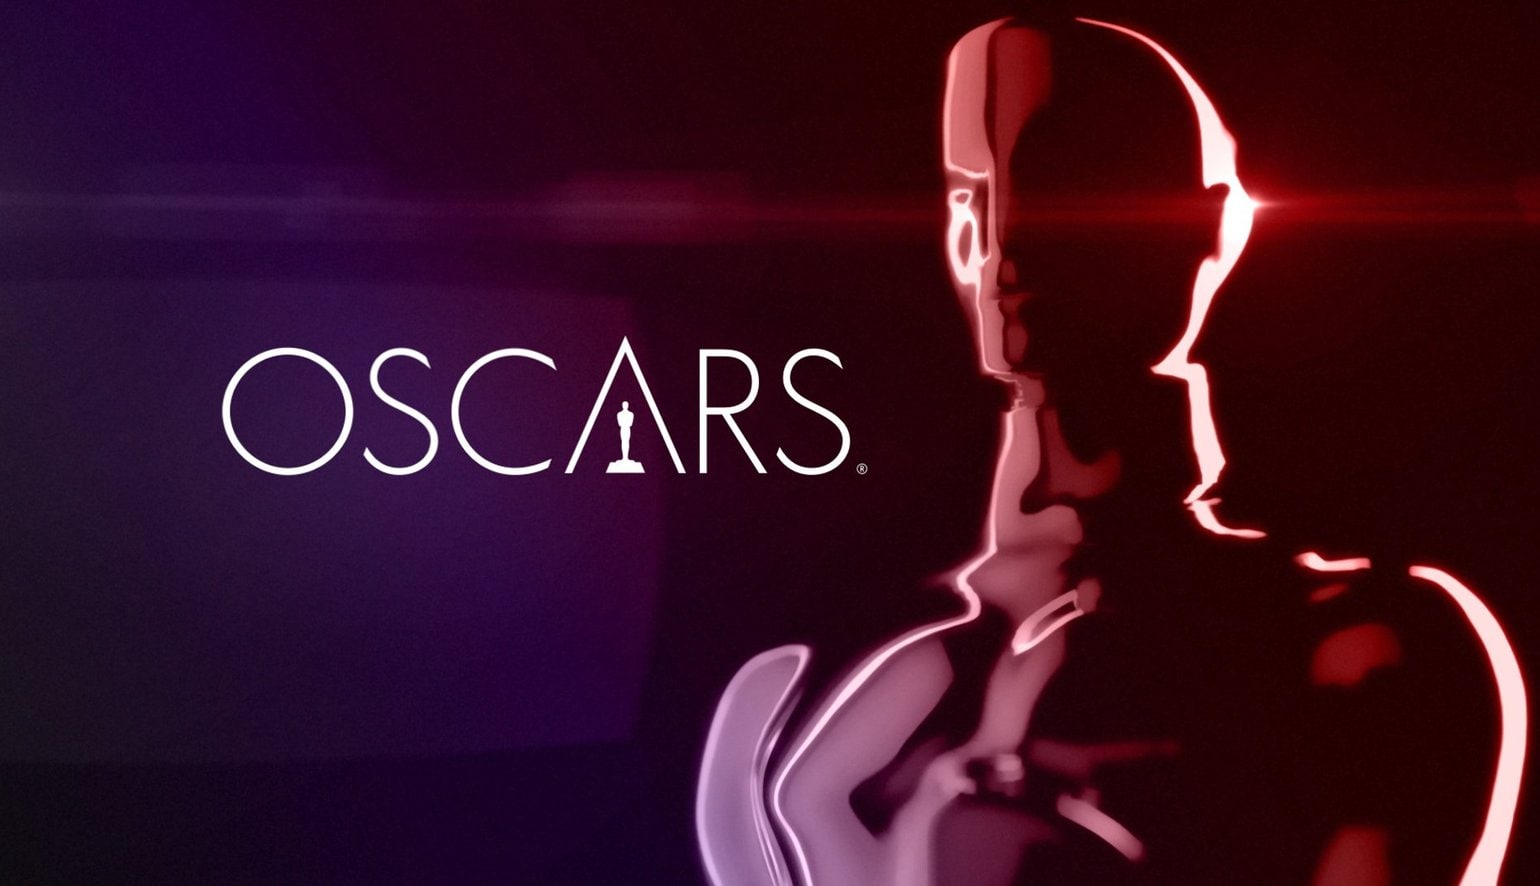 will be the first time in 30 years that the Academy has decided to go ahead without an MC.